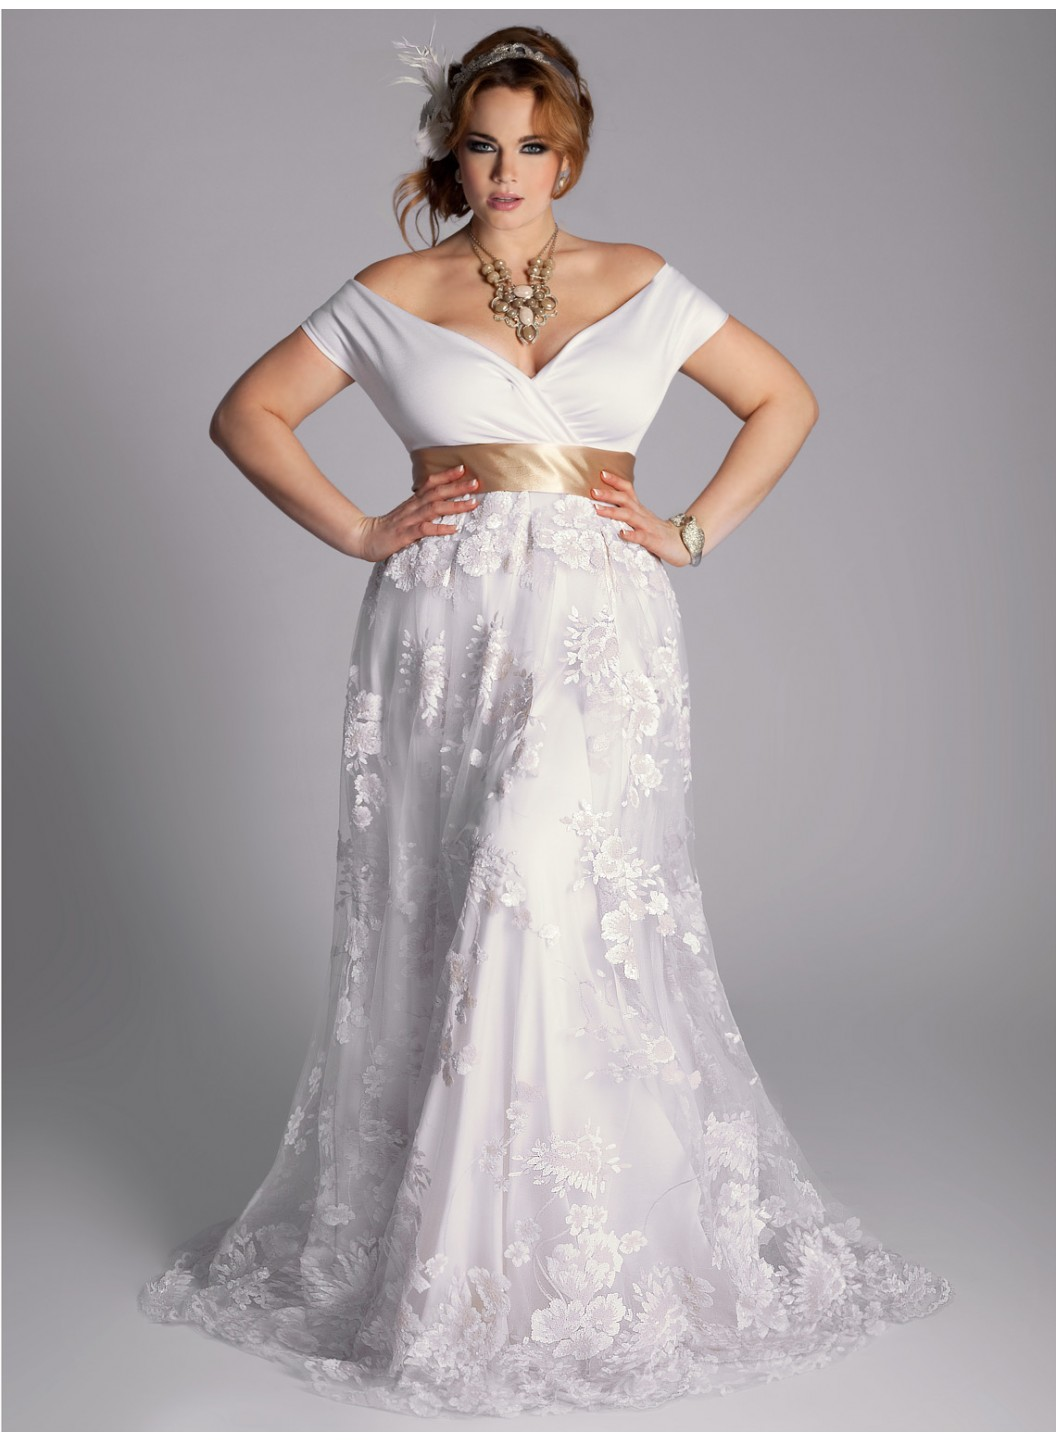 Plus Size Informal Wedding Gowns